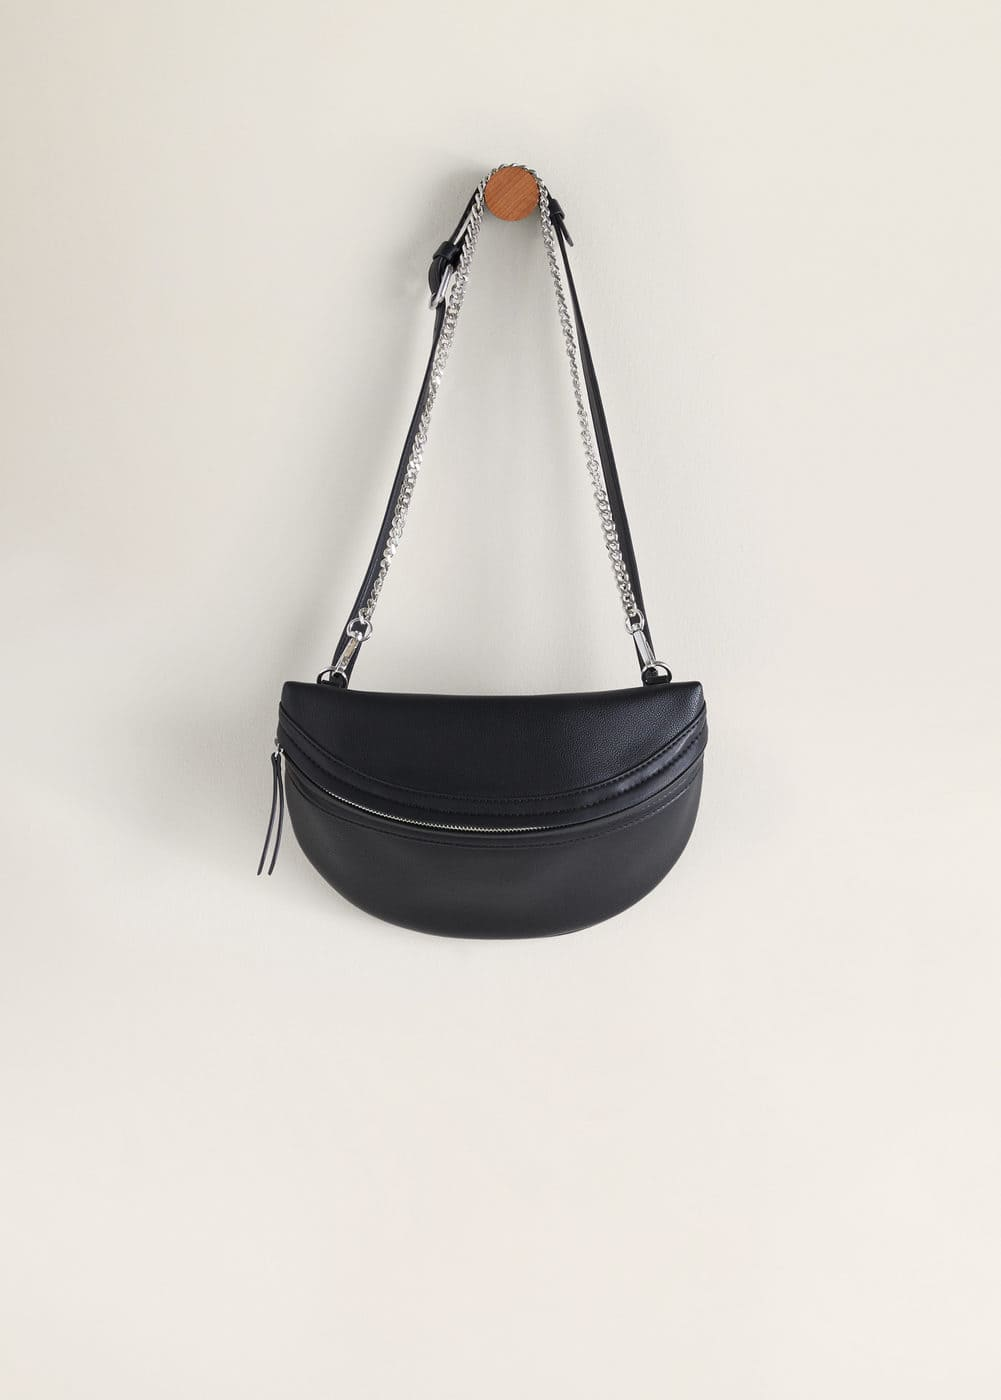 77b6d0d04d Chain crossbody belt bag